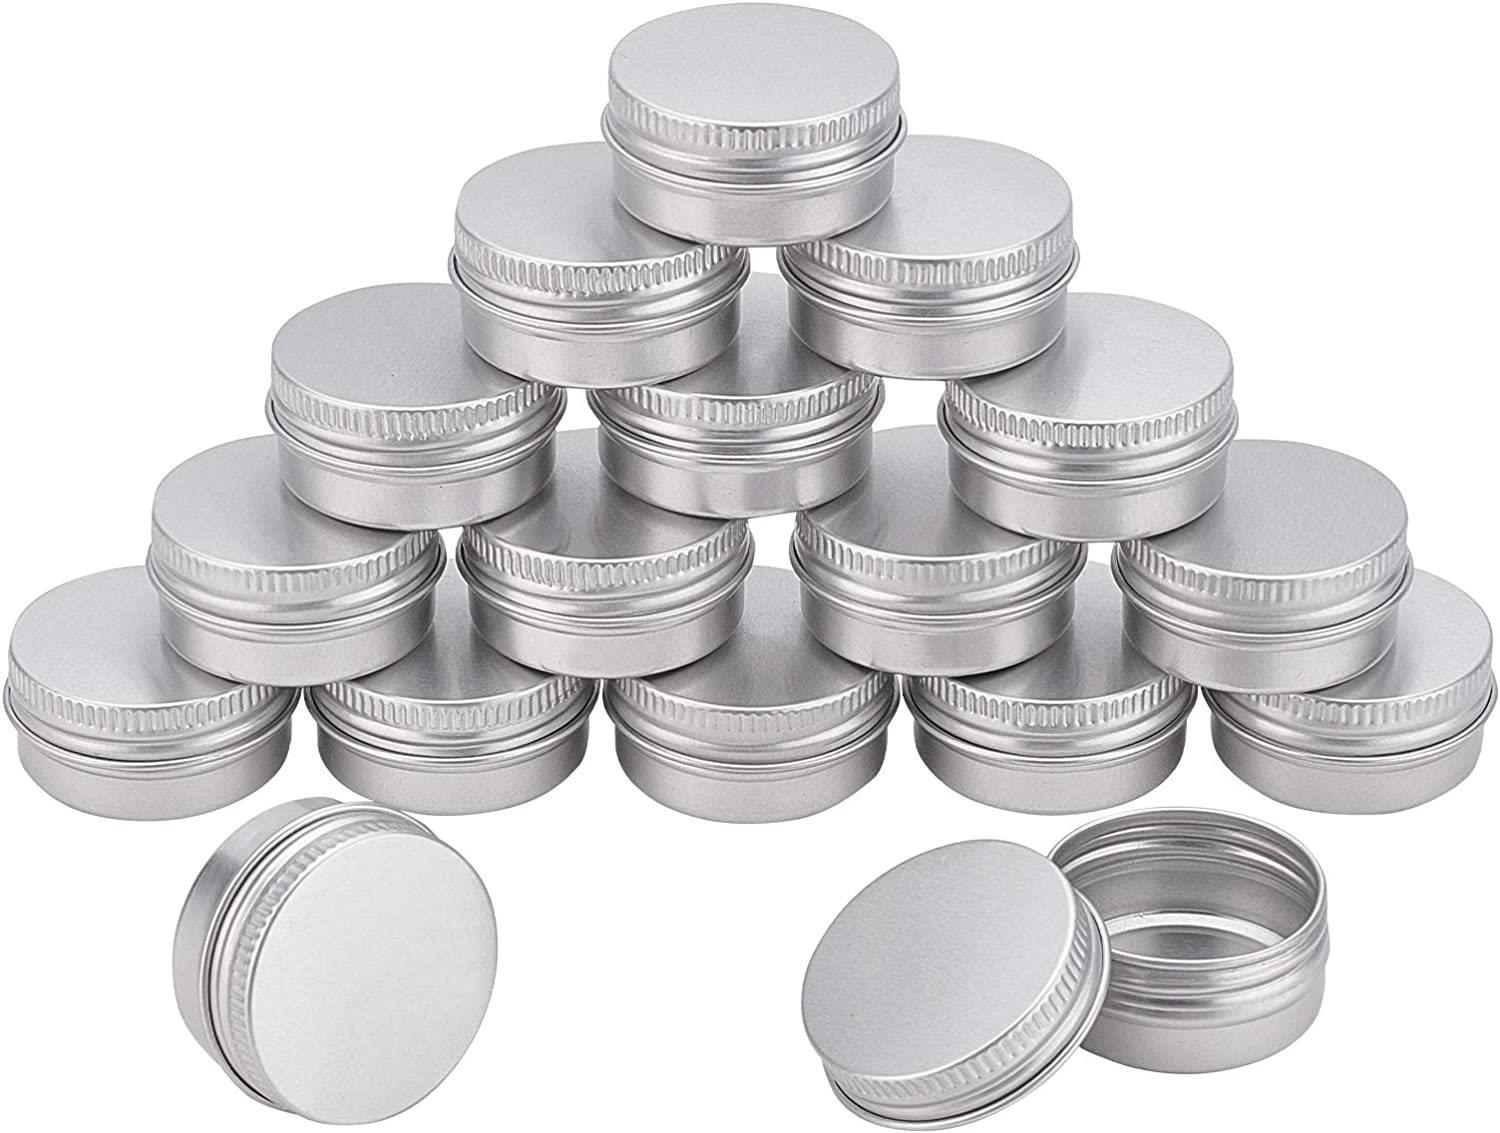 NBEADS 36 Pcs 10g Aluminum Round service Travel Container Tin Cans Tins Challenge the lowest price of Japan